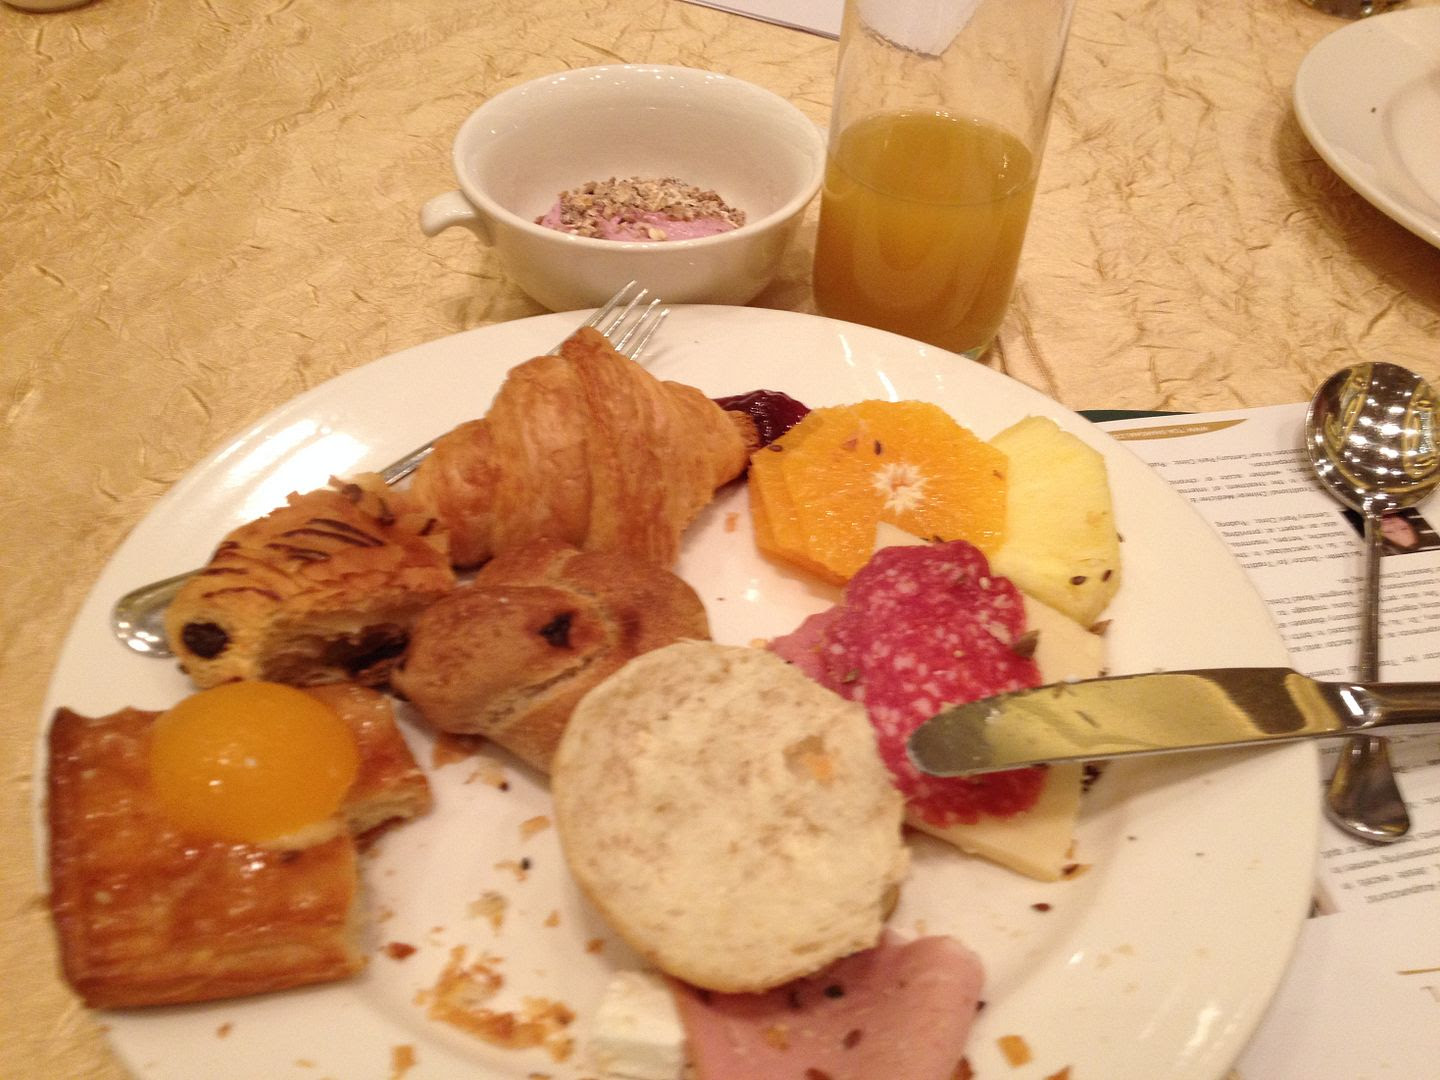 German Breakfast photo 2013-11-25103918_zps6a9eee58.jpg